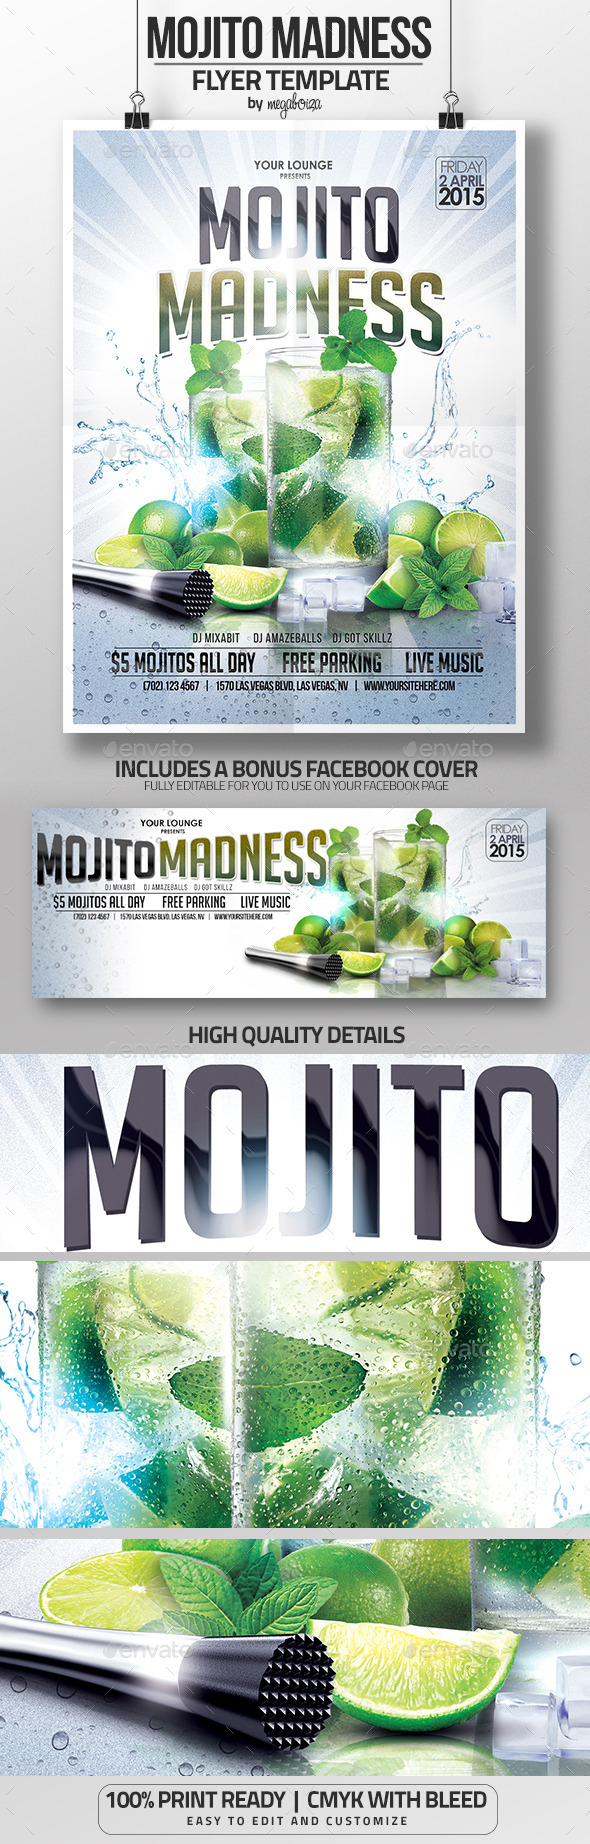 Mojito Madness Flyer/Poster Template - Clubs & Parties Events